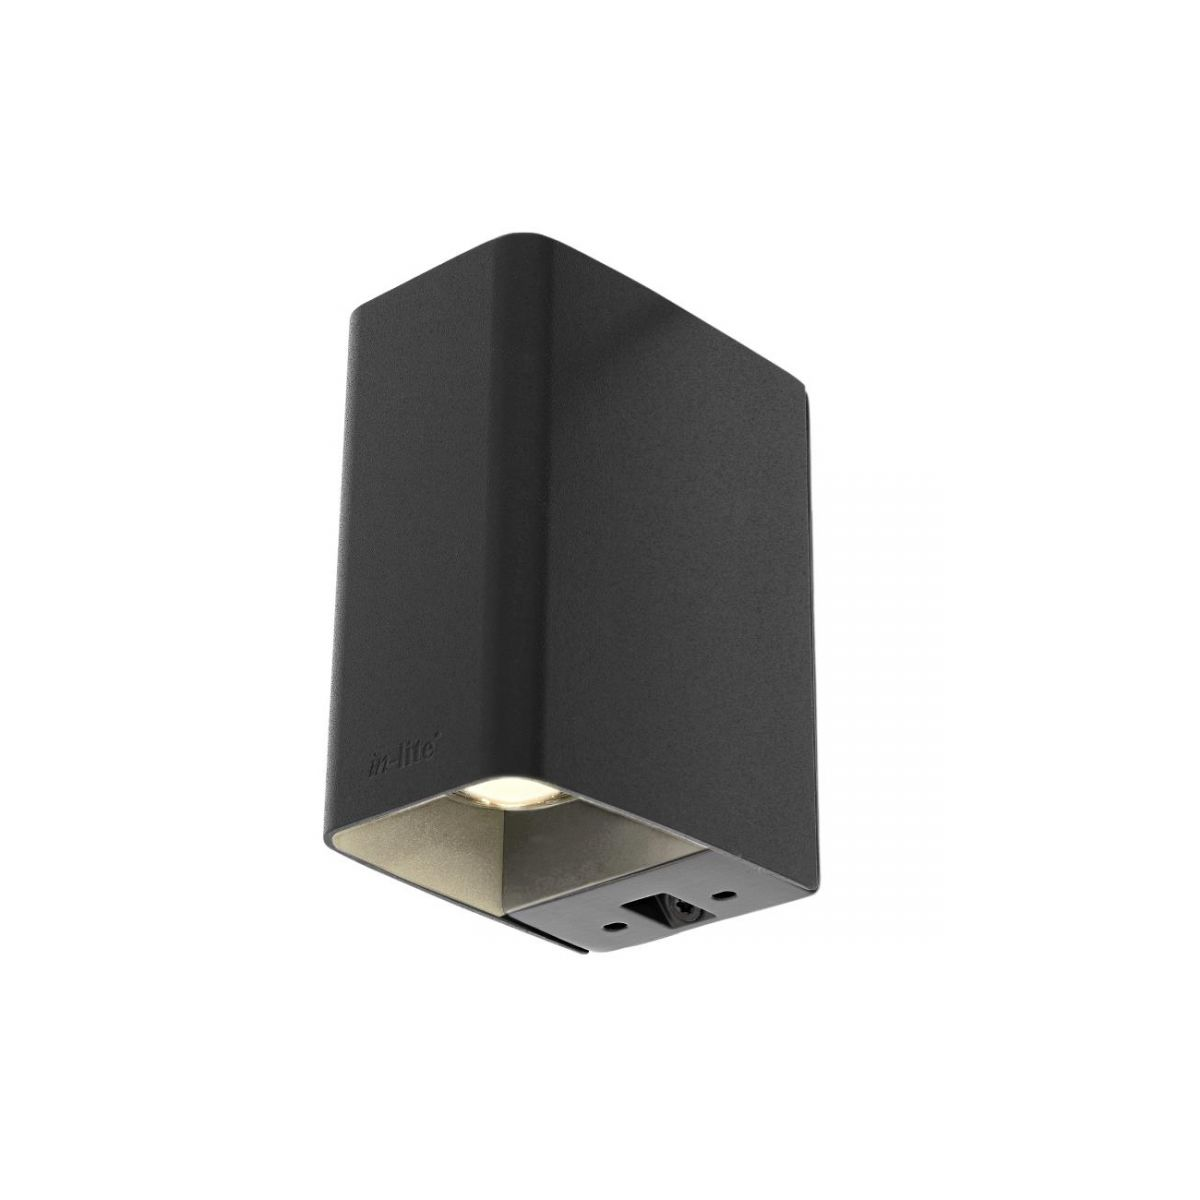 in-lite Ace Dark Wall Up & Down.1